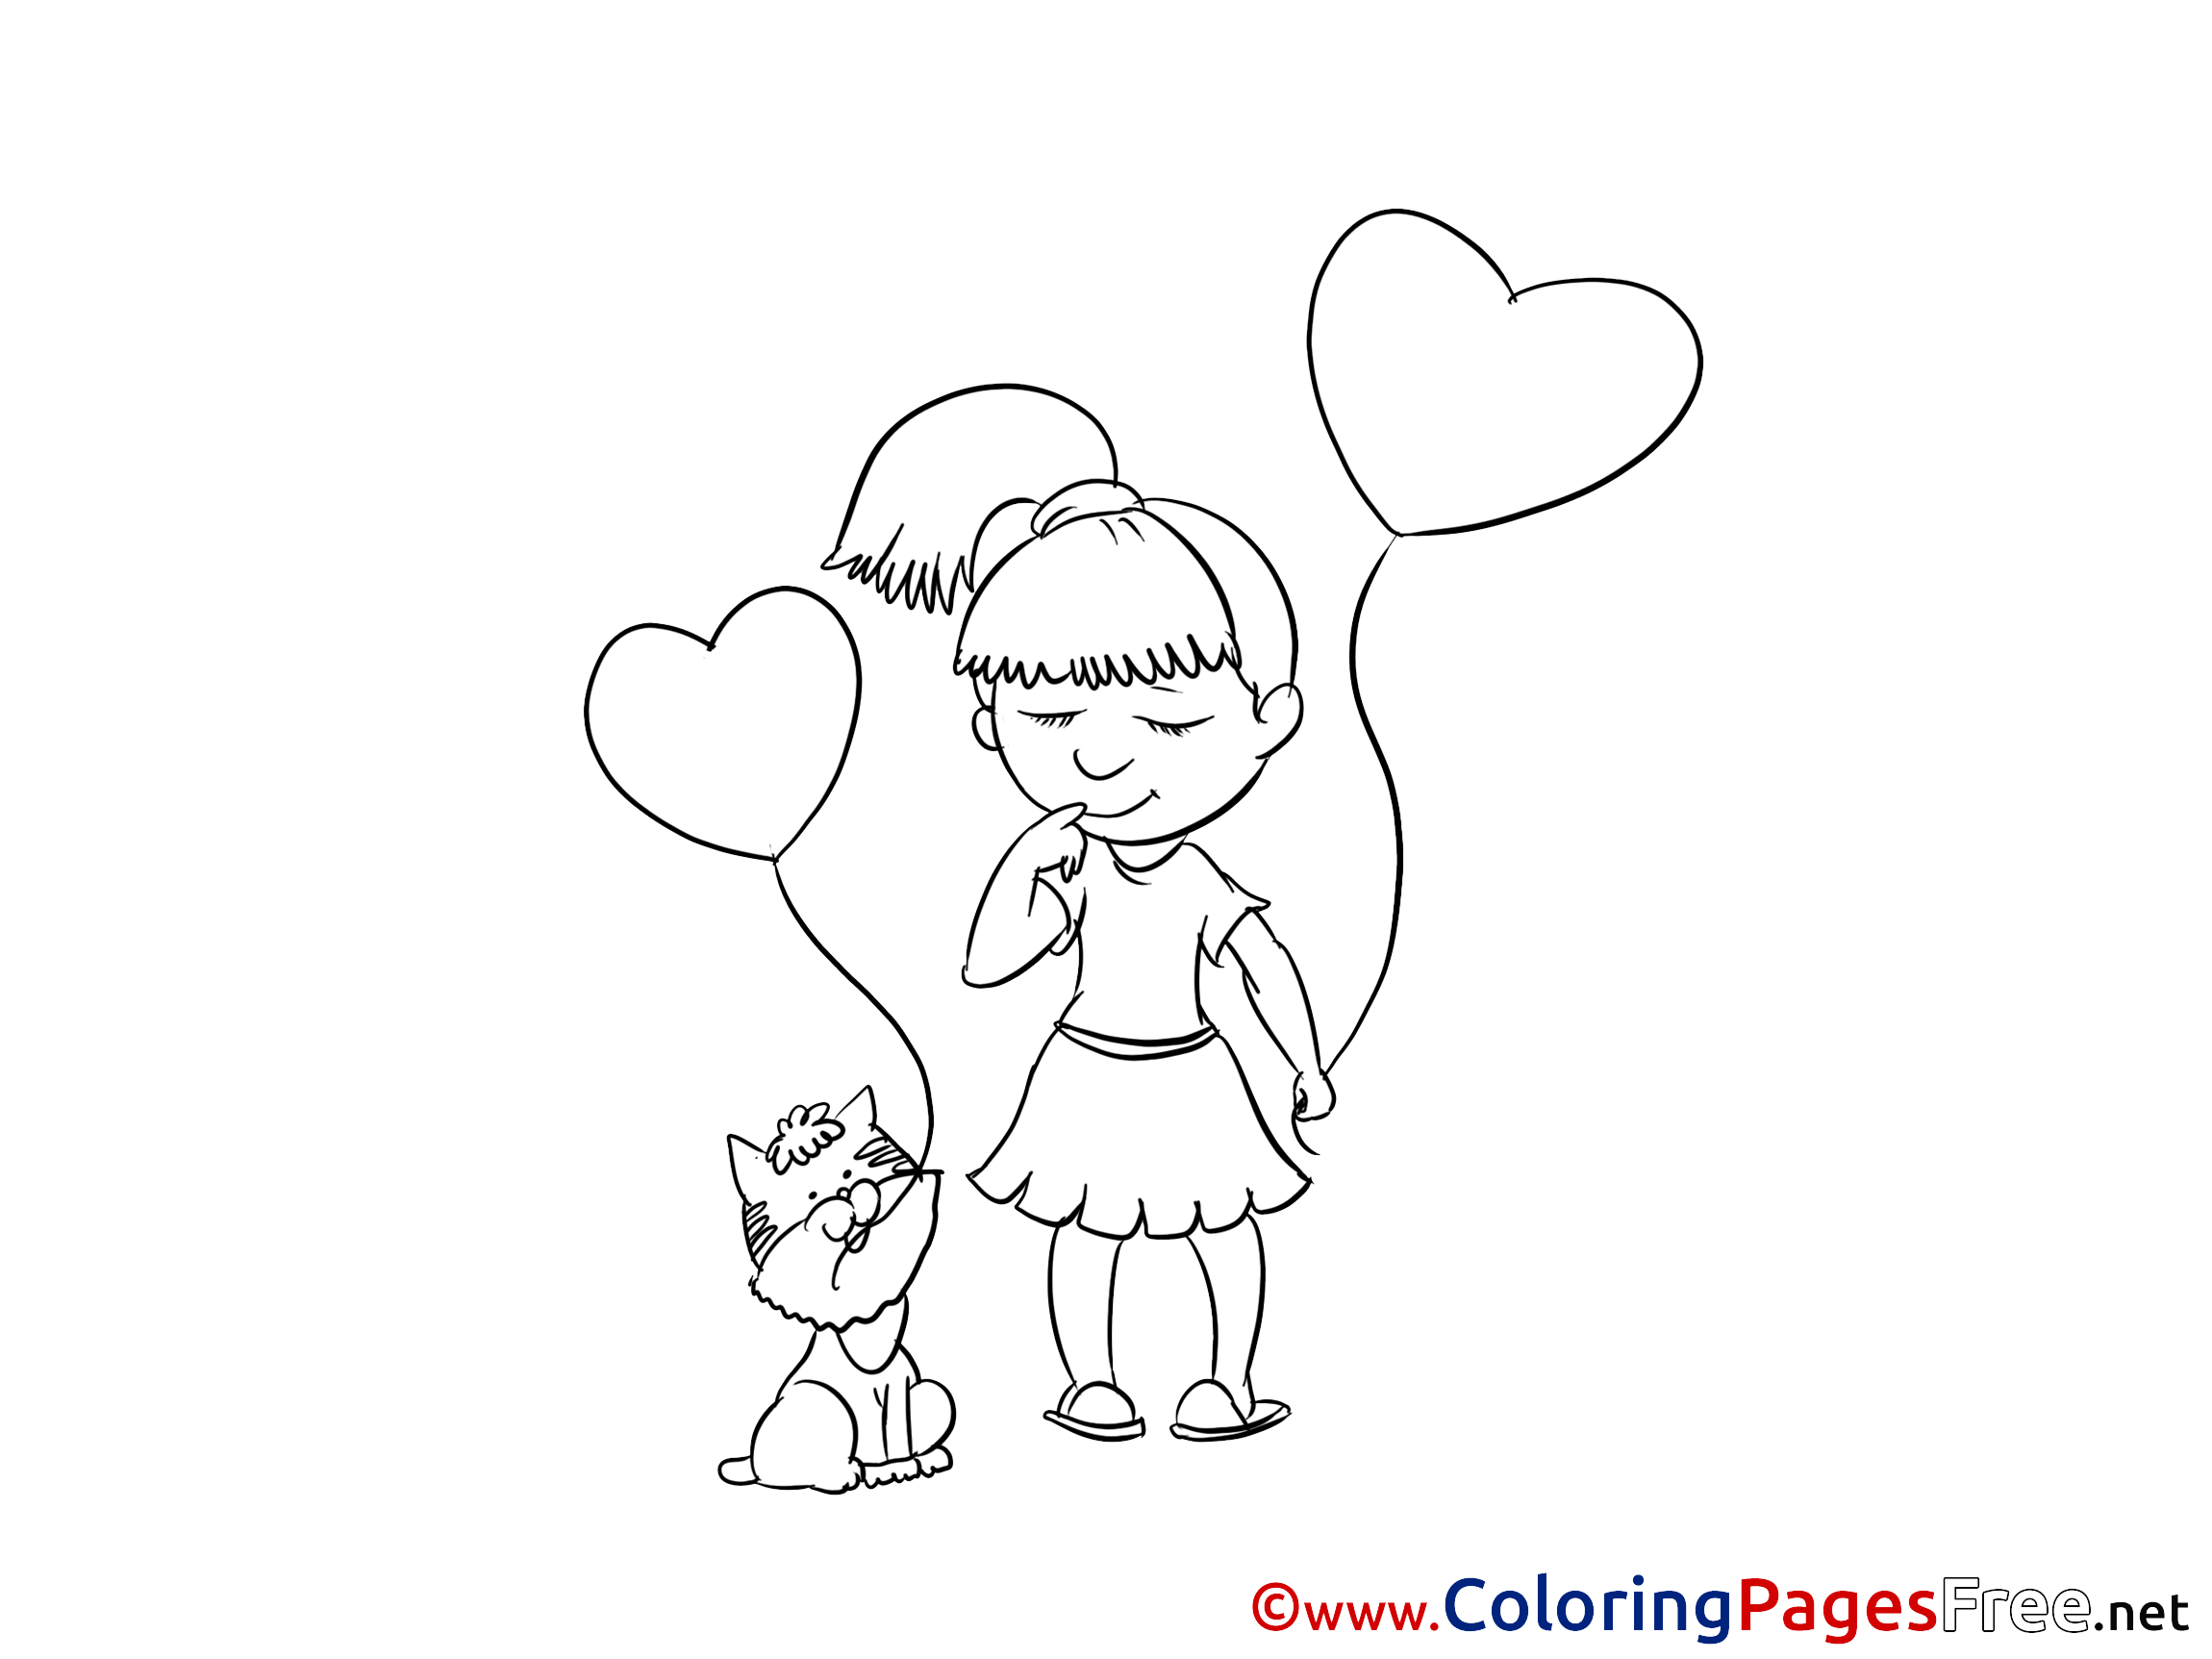 Zentangle Heart coloring page | Free Printable Coloring Pages | 1725x2300